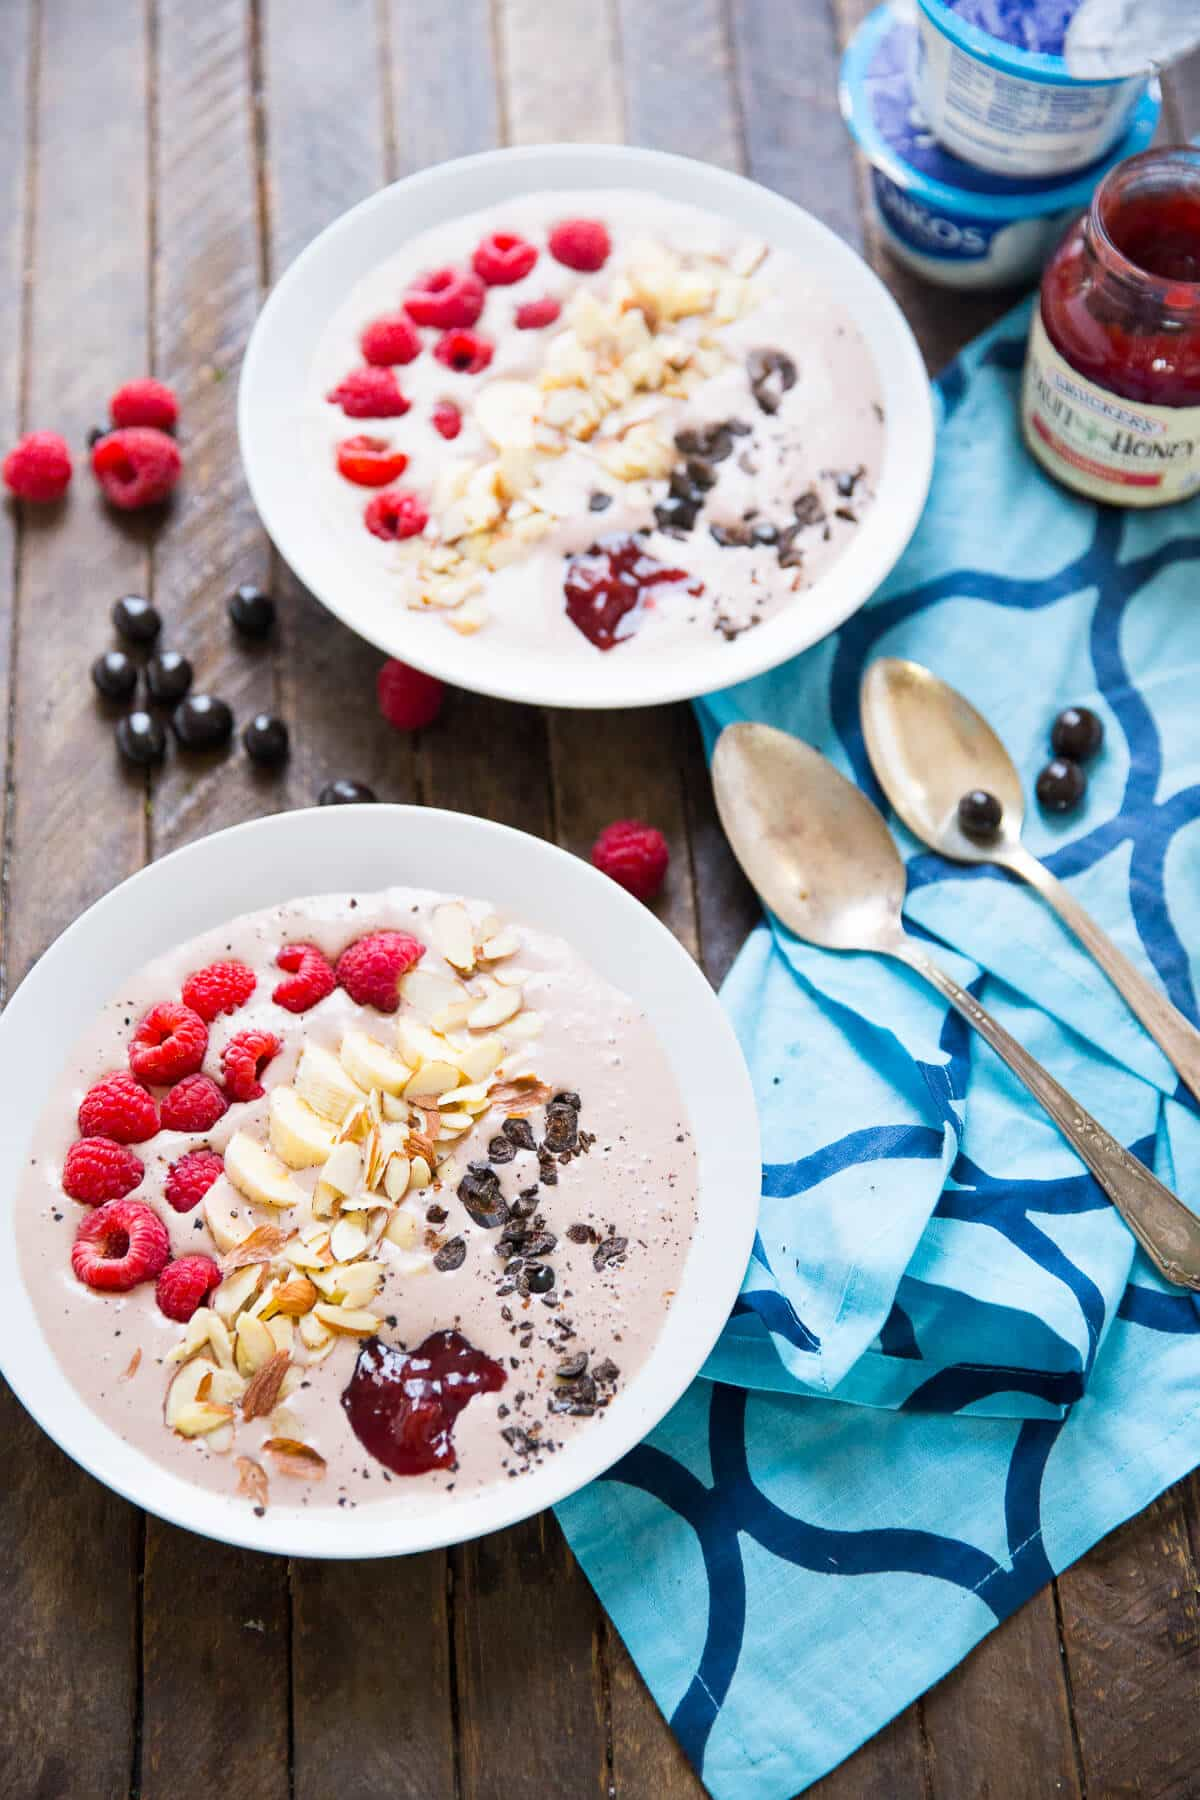 Smoothie bowls make breakfast fun! This smoothie bowl is full of nuts, fruit, and a hint of mocha!